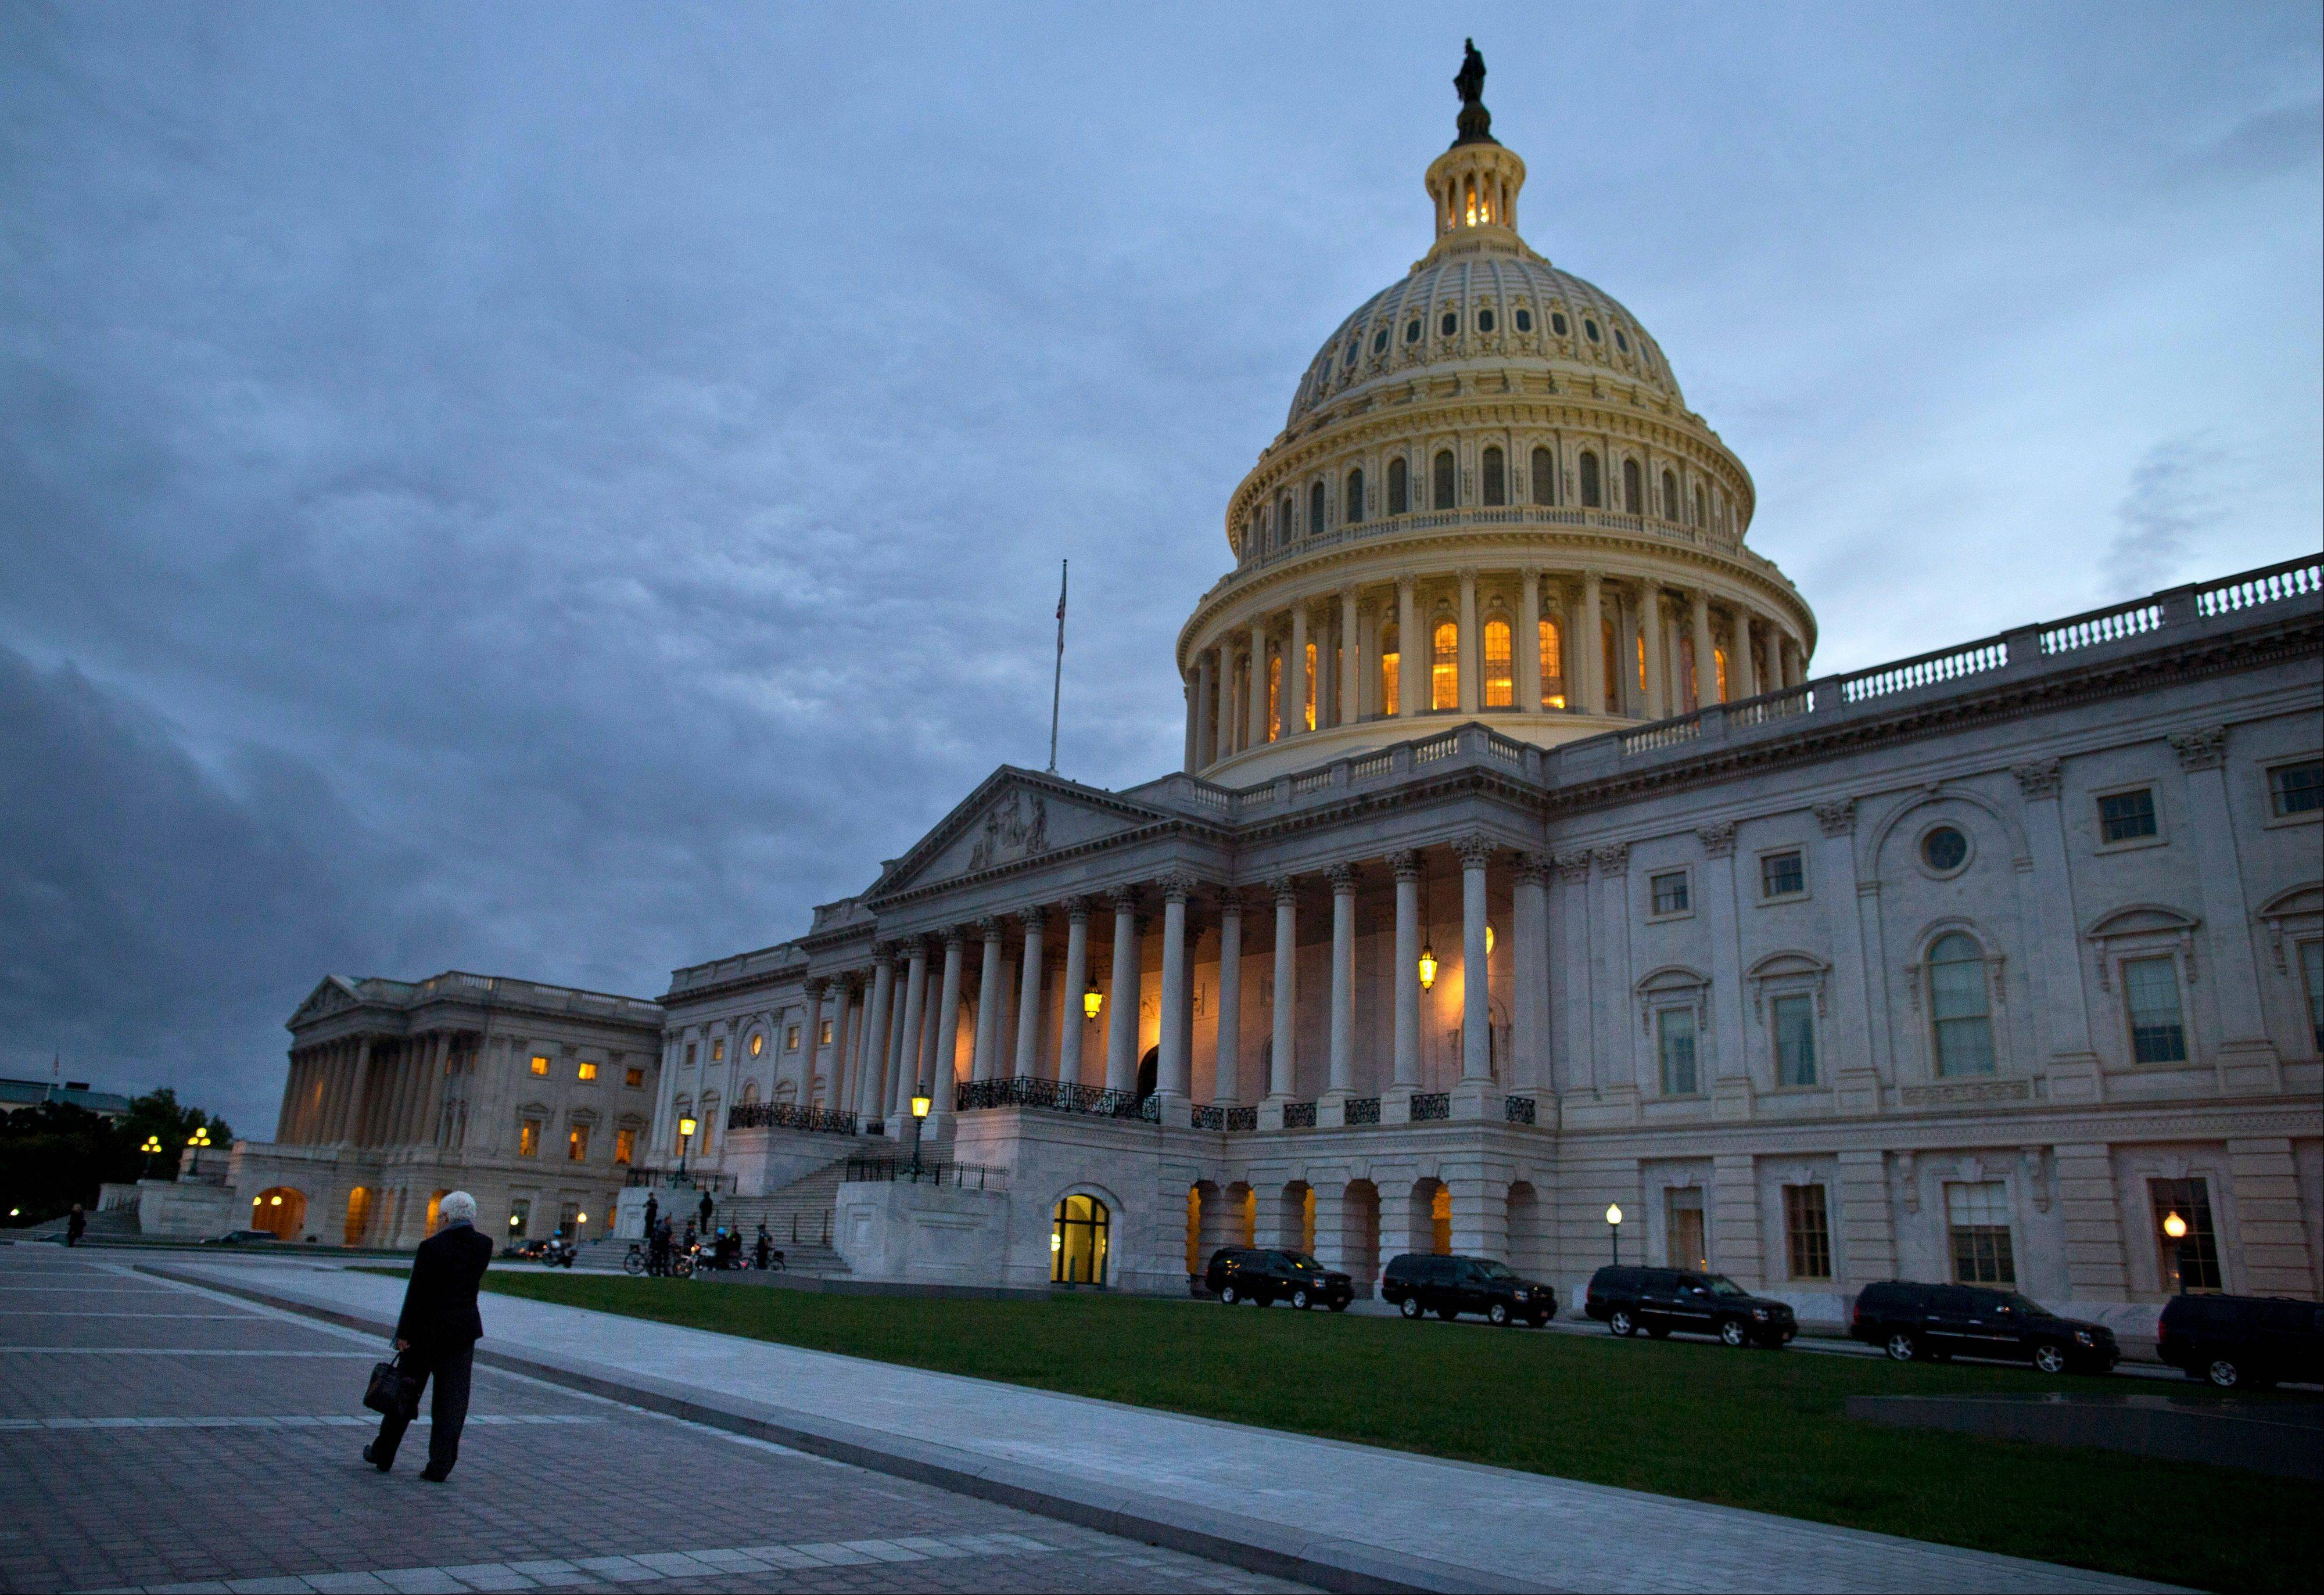 Even if Congress reaches a last-minute or deadline-busting deal to avert a federal default and fully reopen the government, elected officials are likely to return to their grinding brand of brinkmanship, perhaps repeatedly. House-Senate talks are barely touching the underlying causes of debt-and-spending stalemates that pushed the country close to economic crises in 2011, last December and again this month.